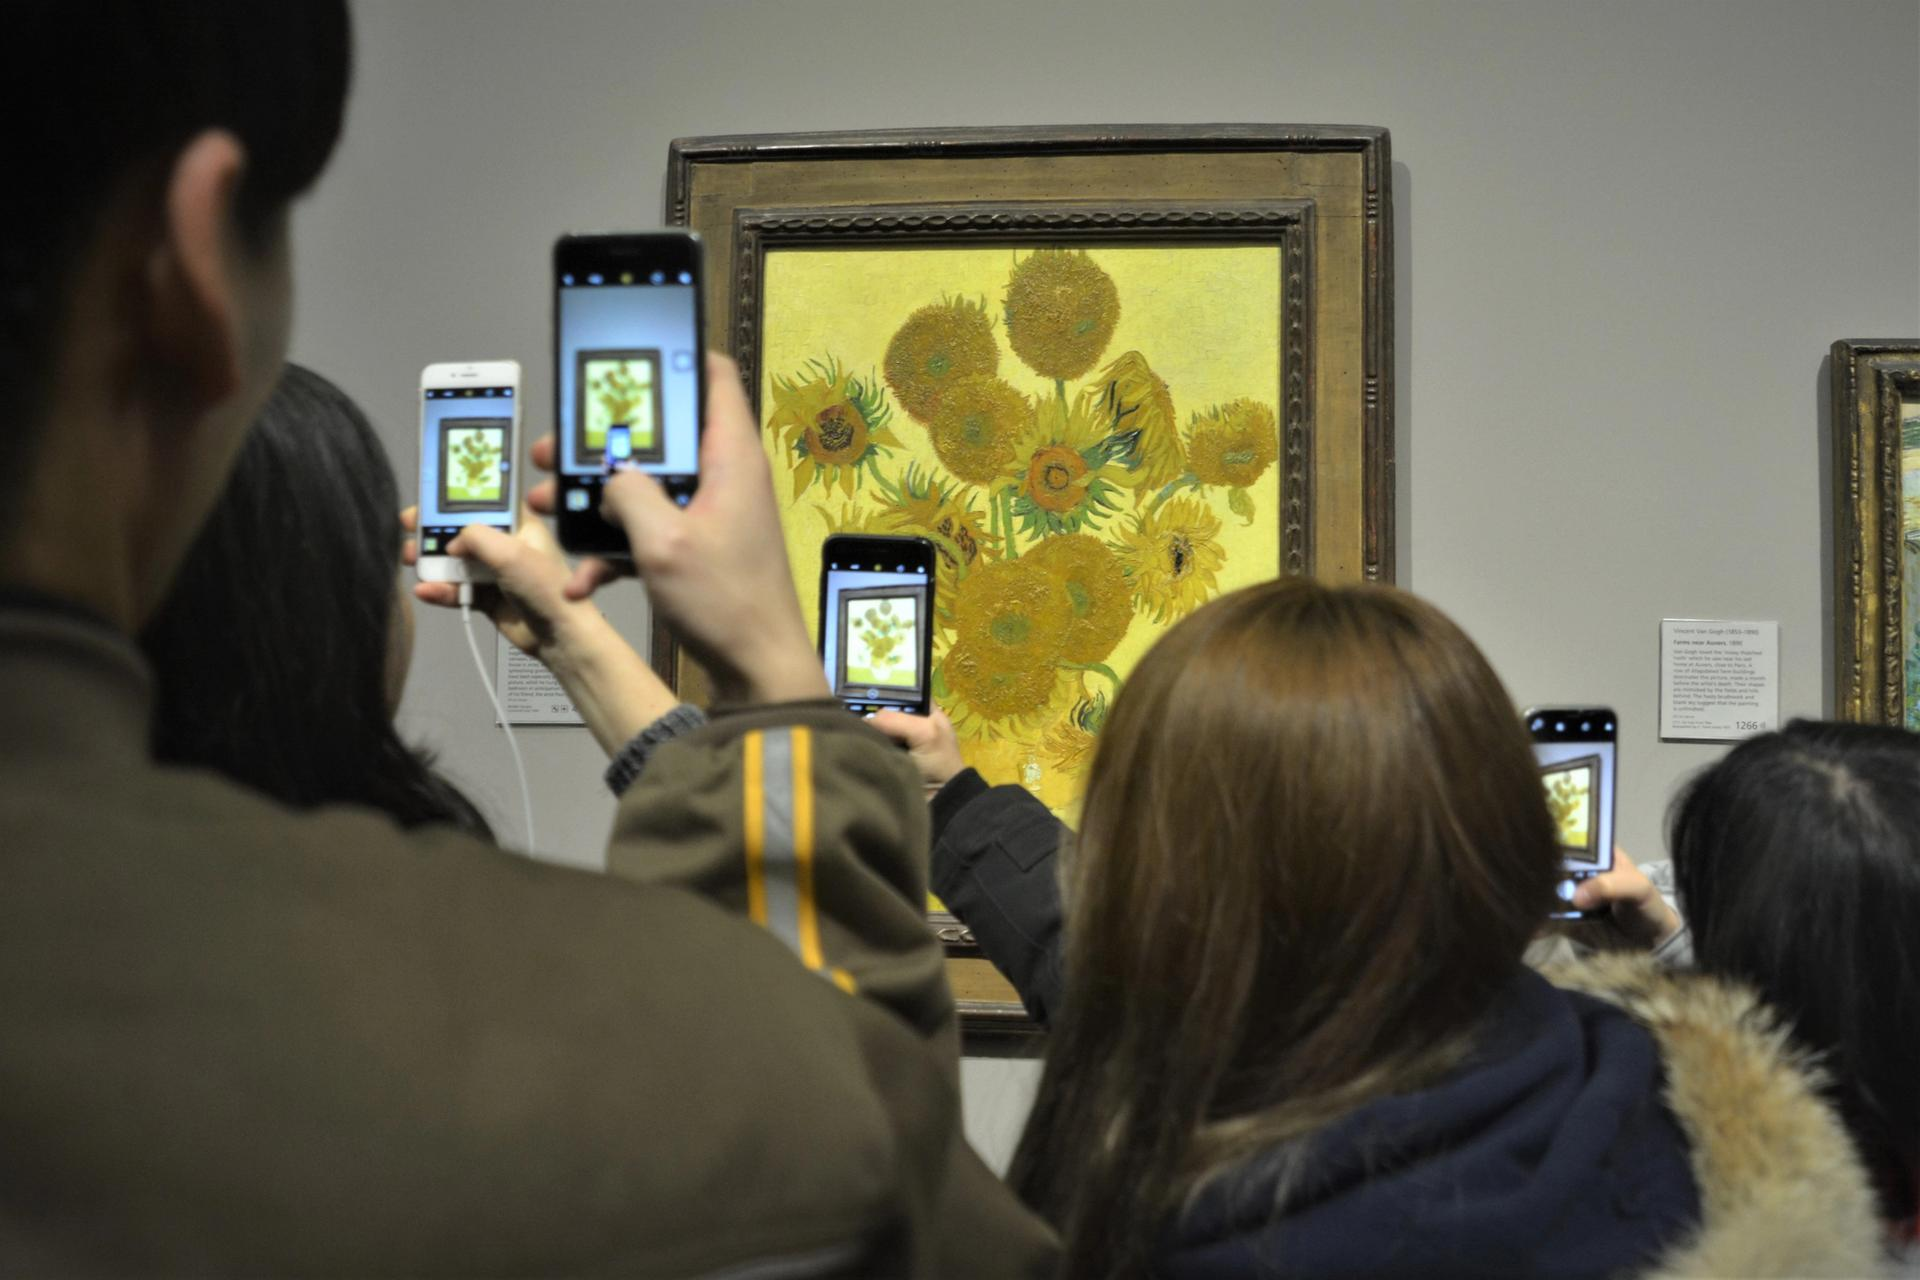 Temporarily un-Instagrammable: Vincent van Gogh's Sunflowers is among 60 masterpieces from London's National Gallery caught up in a Japanese museum closure Photo: Ka Yau Lee, on Flickr